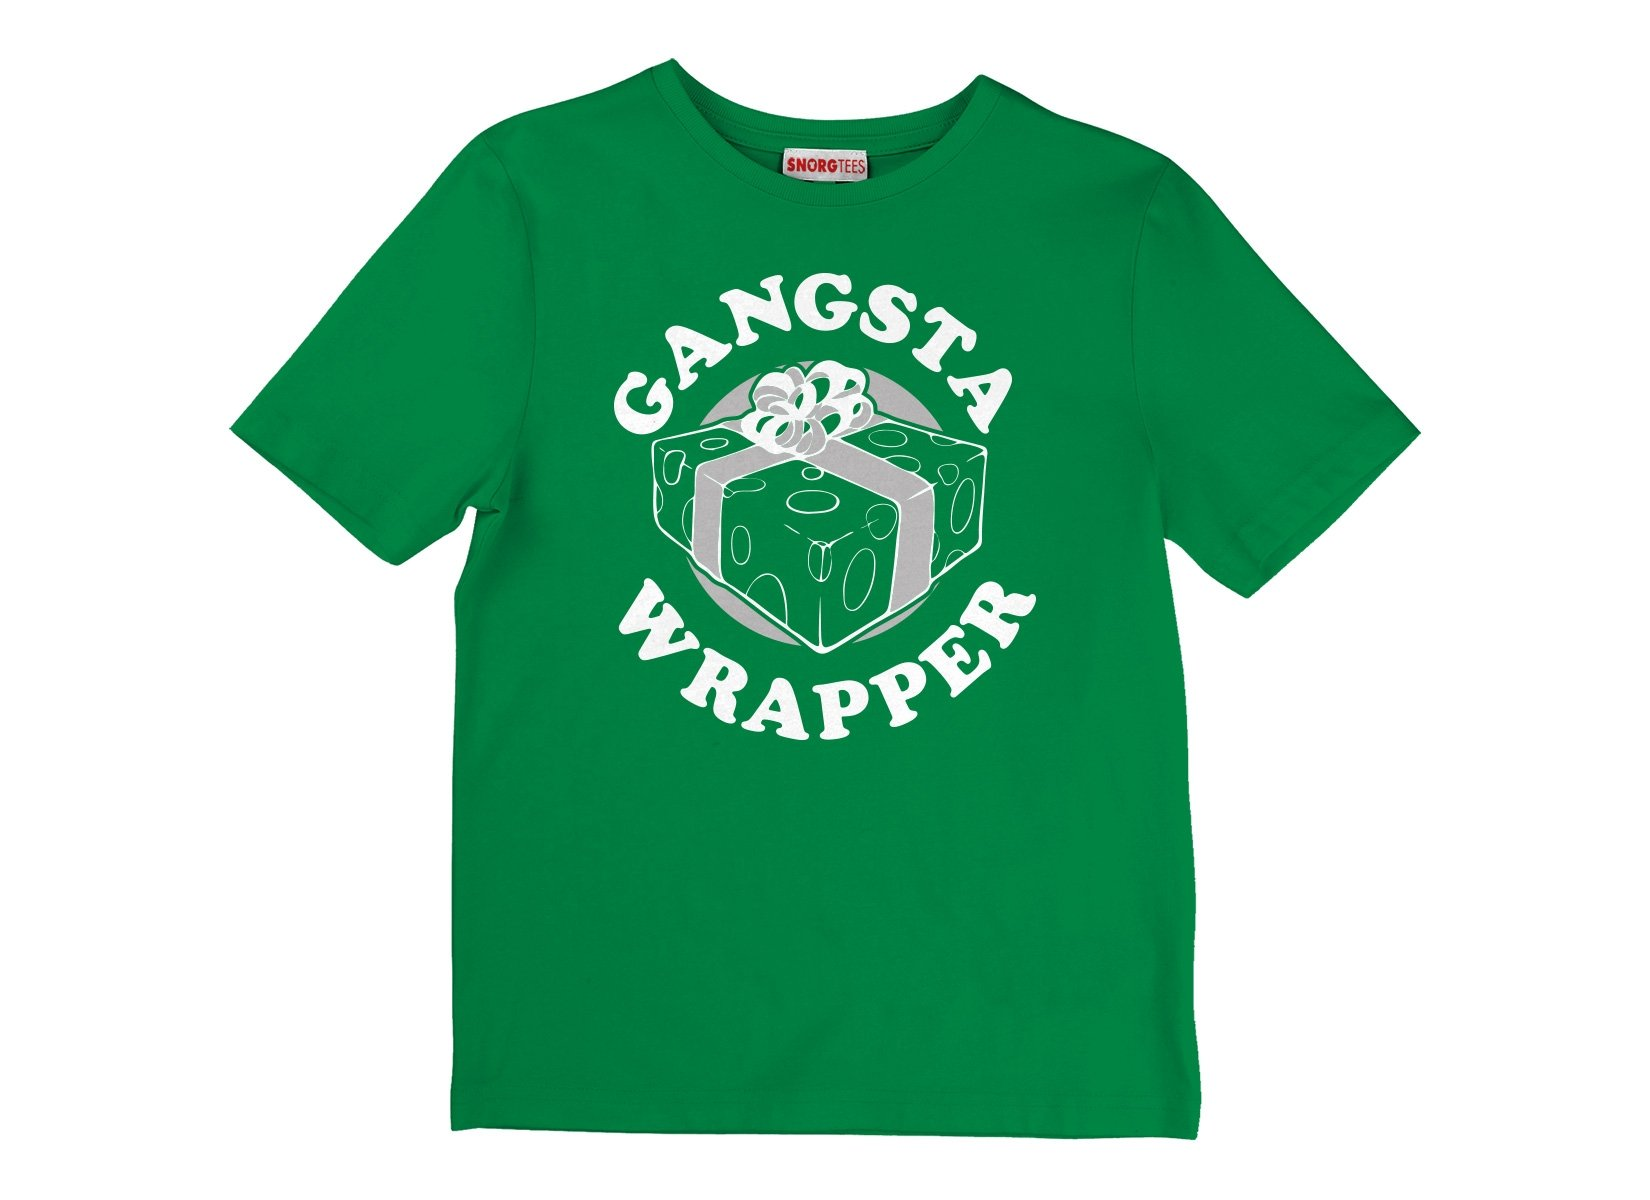 Gangsta Wrapper on Kids T-Shirt